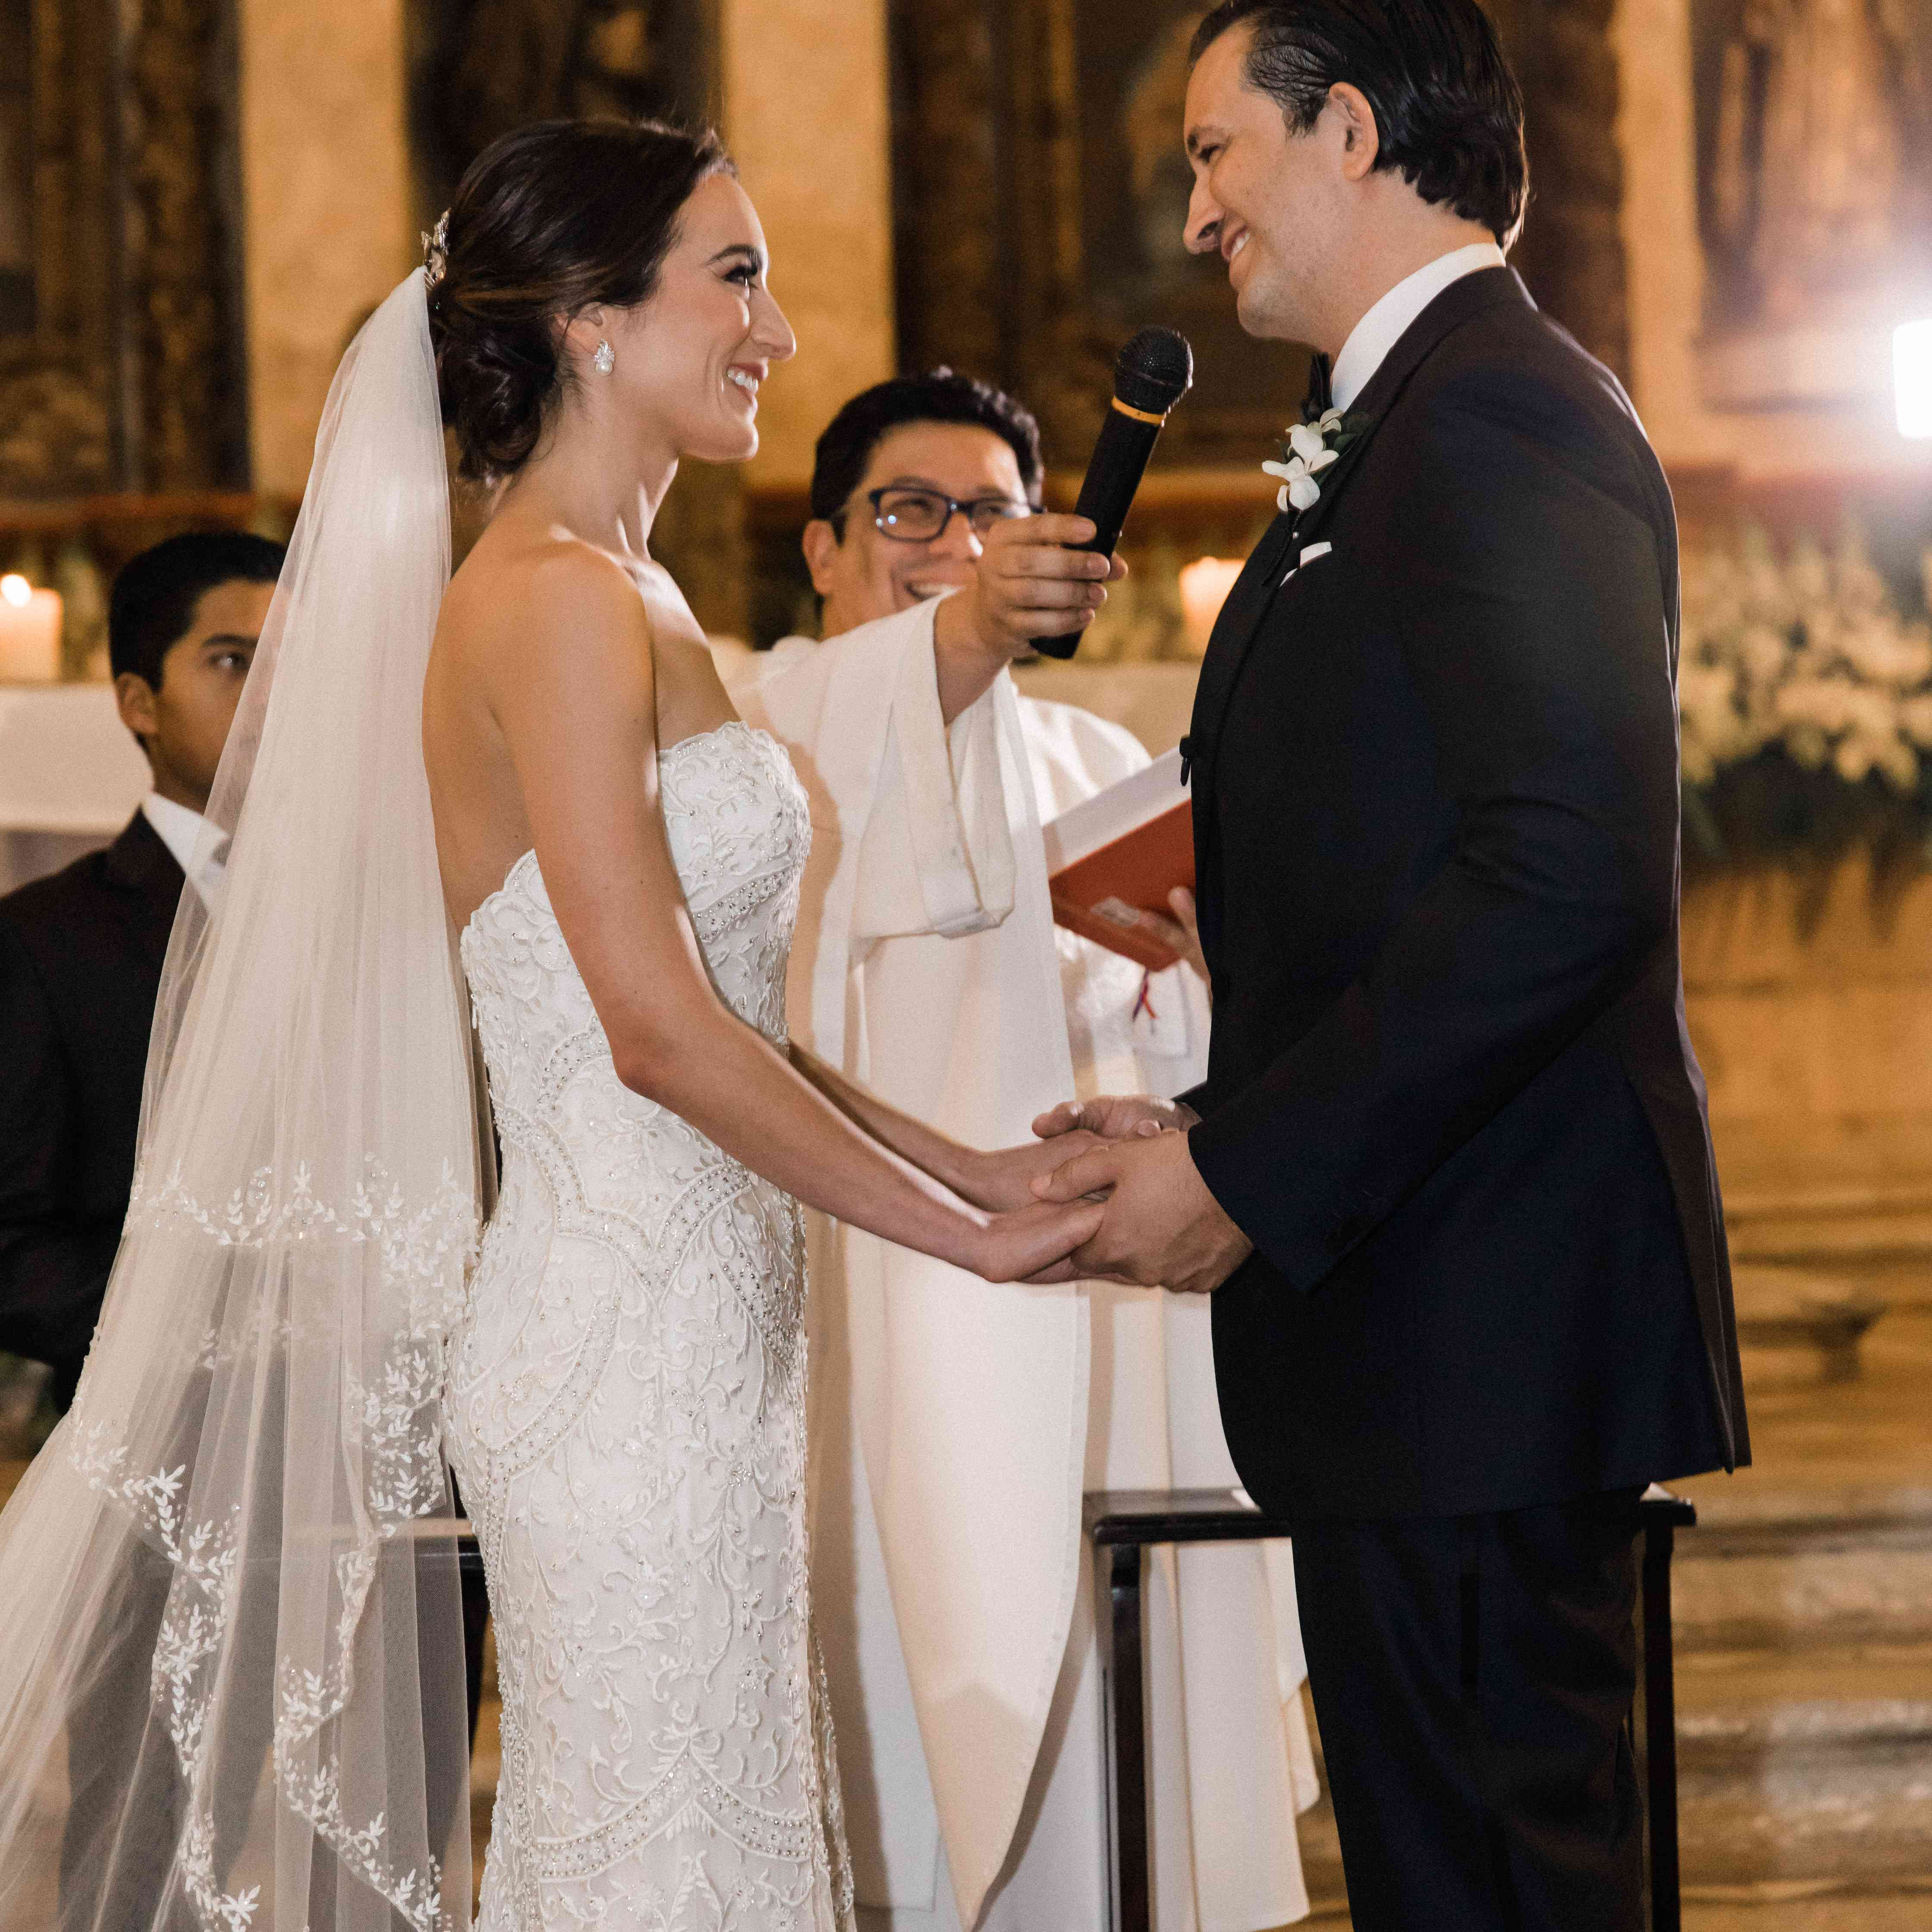 <p>bride and groom reciting vows</p><br><br>